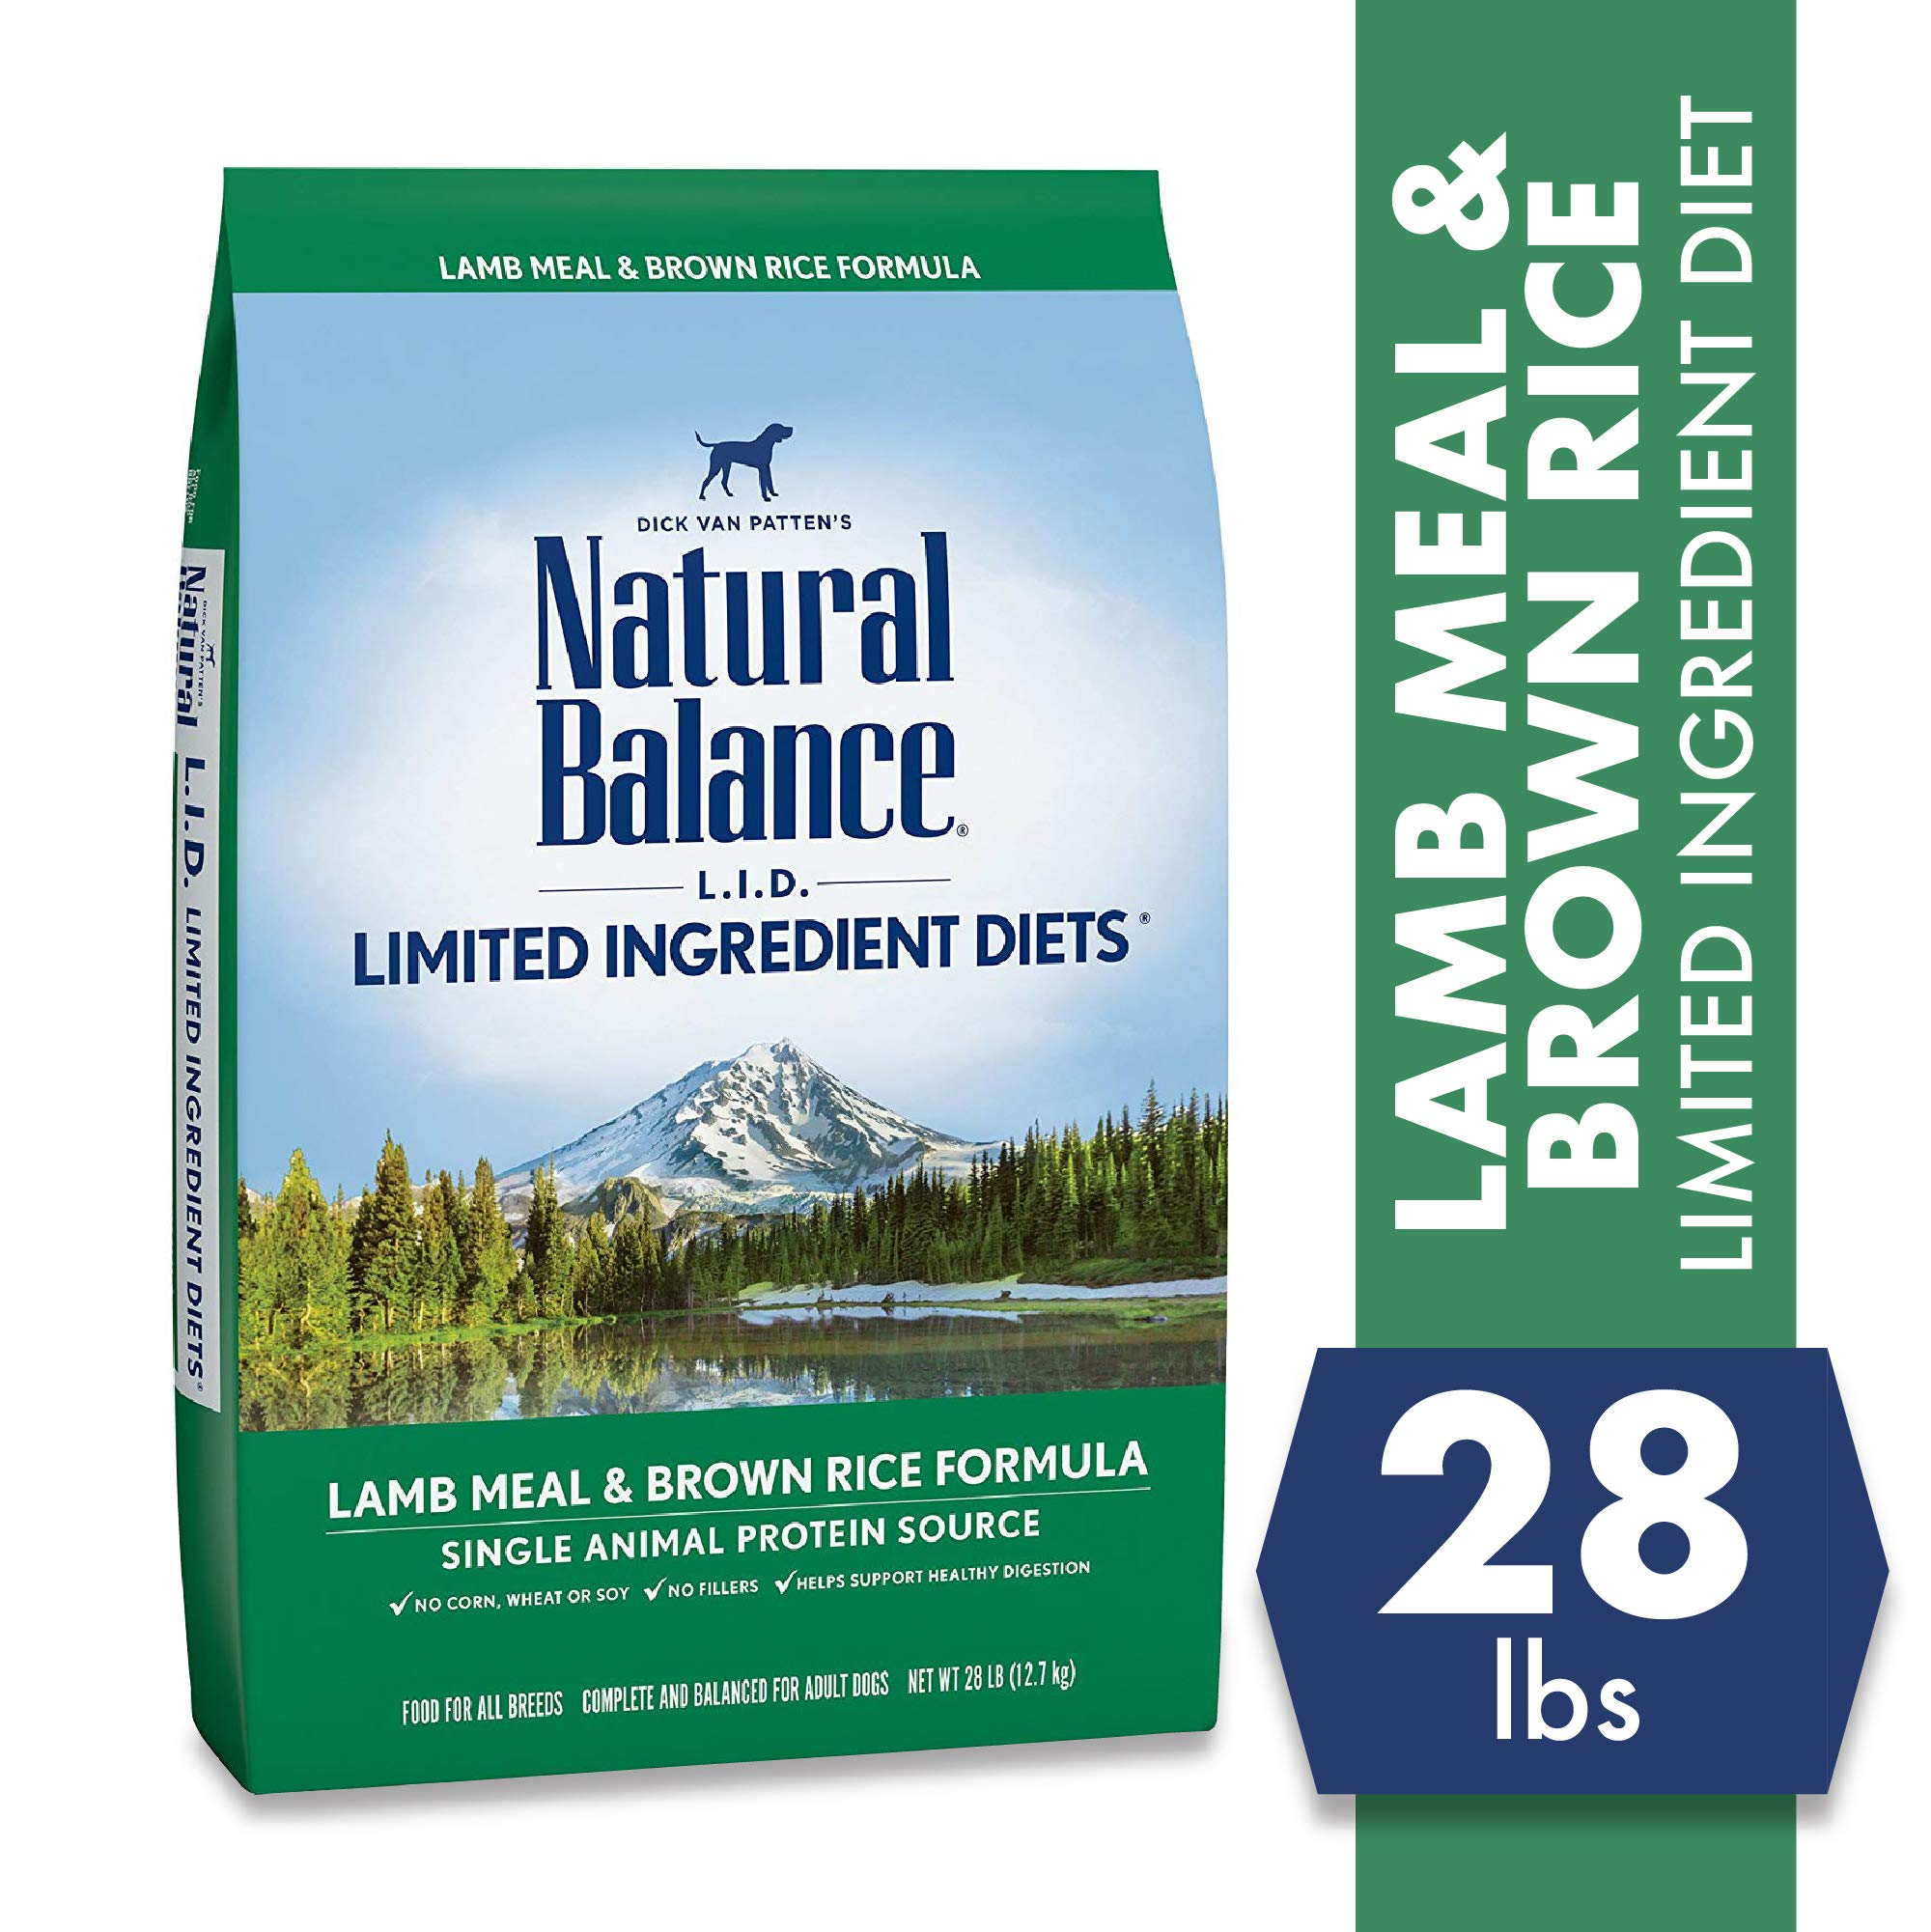 Natural Balance L.I.D. Limited Ingredient Diets Dry Dog Food, Lamb Meal & Brown Rice Formula, 28 Pound by Natural Balance